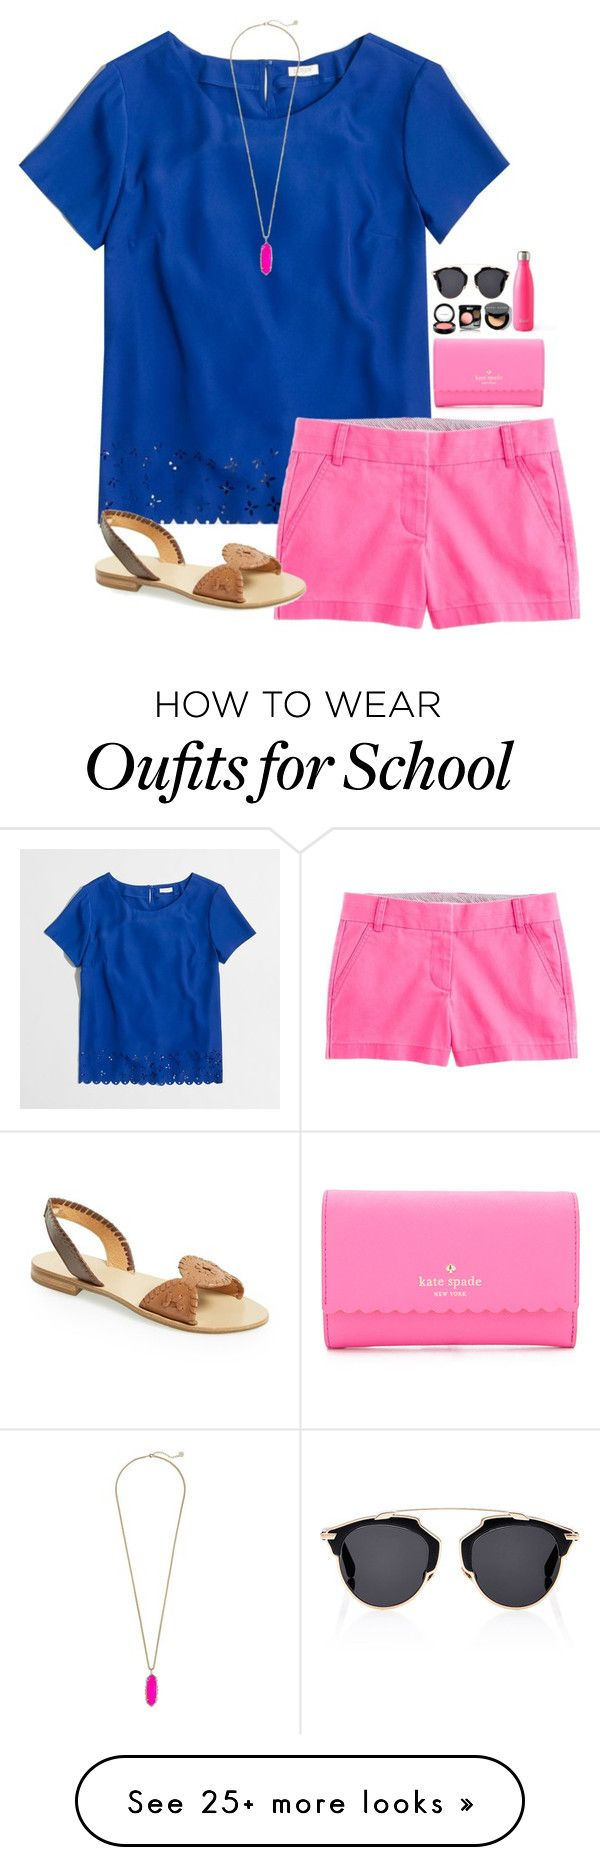 """ @school"" by leawhite on Polyvore featuring J.Crew, Kate Spade, MAC Cosmetics, Chanel, Bobbi Brown Cosmetics, Jack Rogers, S'well, Christian Dior and Kendra Scott"